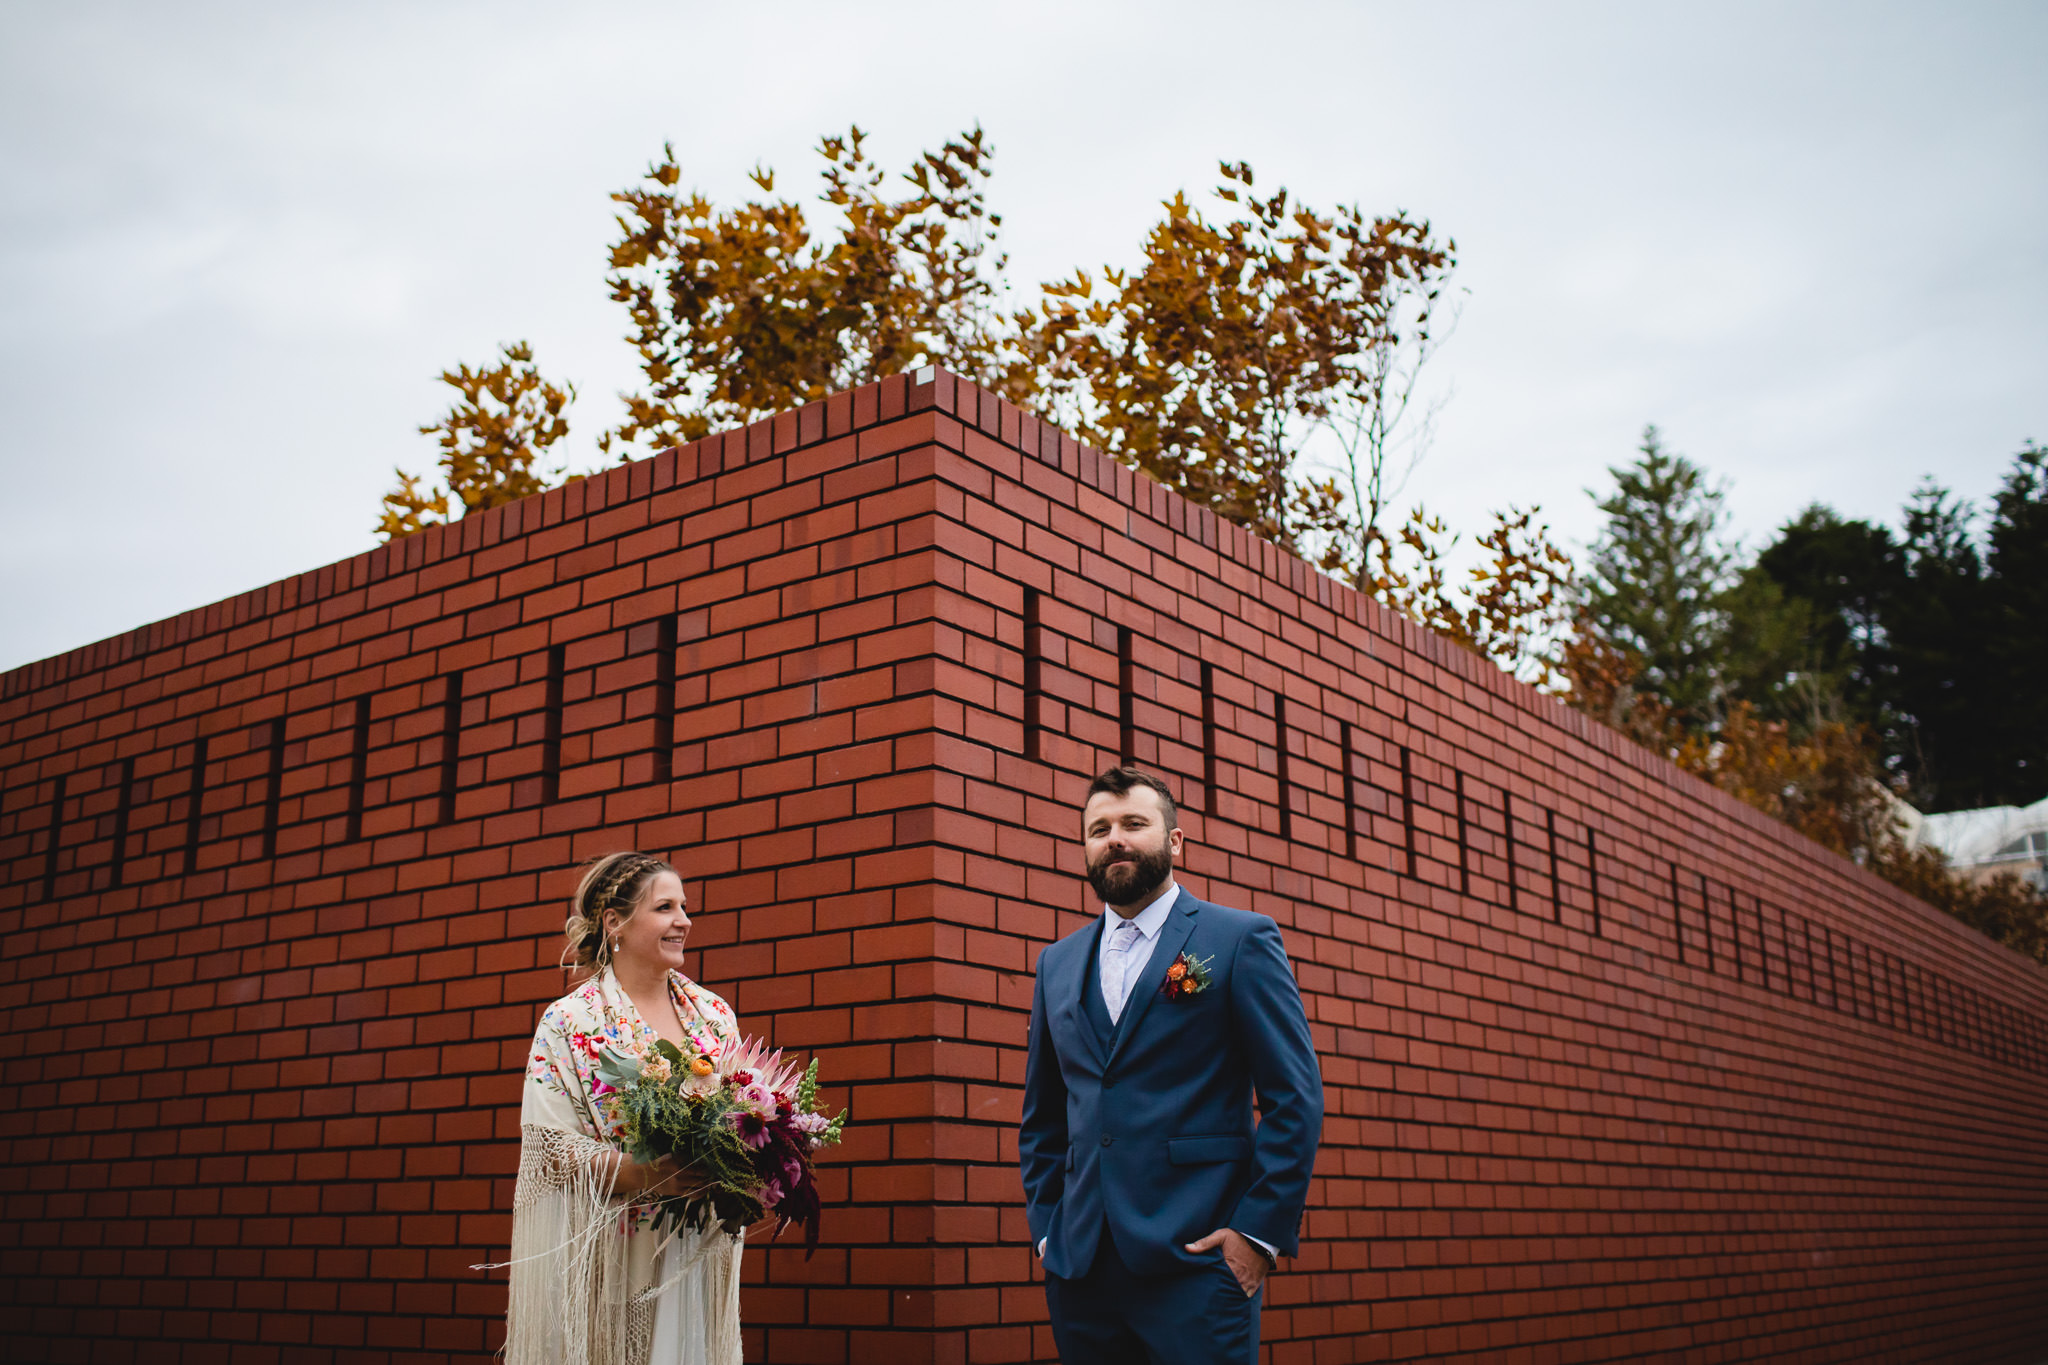 Bride with colourful shawl and bouquet and groom posing in front of angular red brick wall in Fremantle after their wedding